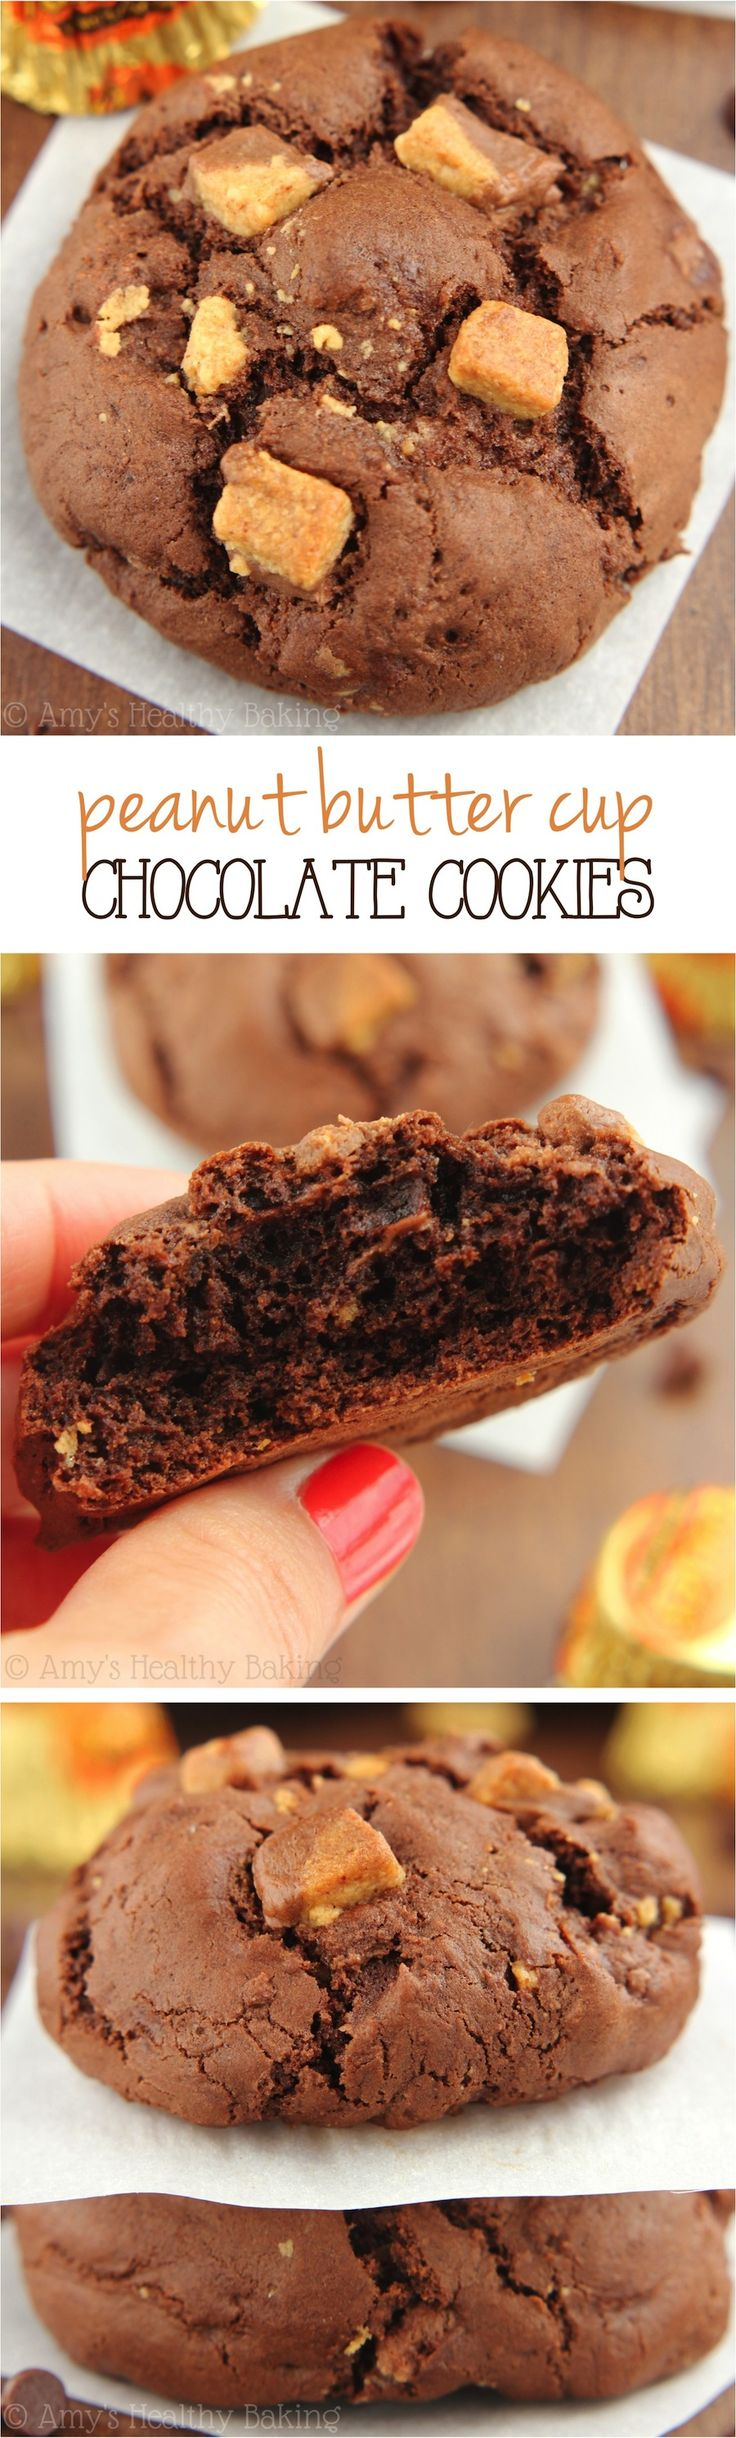 Peanut Butter Cup Chocolate Cookies -- the BEST cookies I've ever made. They taste like a giant Reese's! Super soft, so easy & only 105 calories!